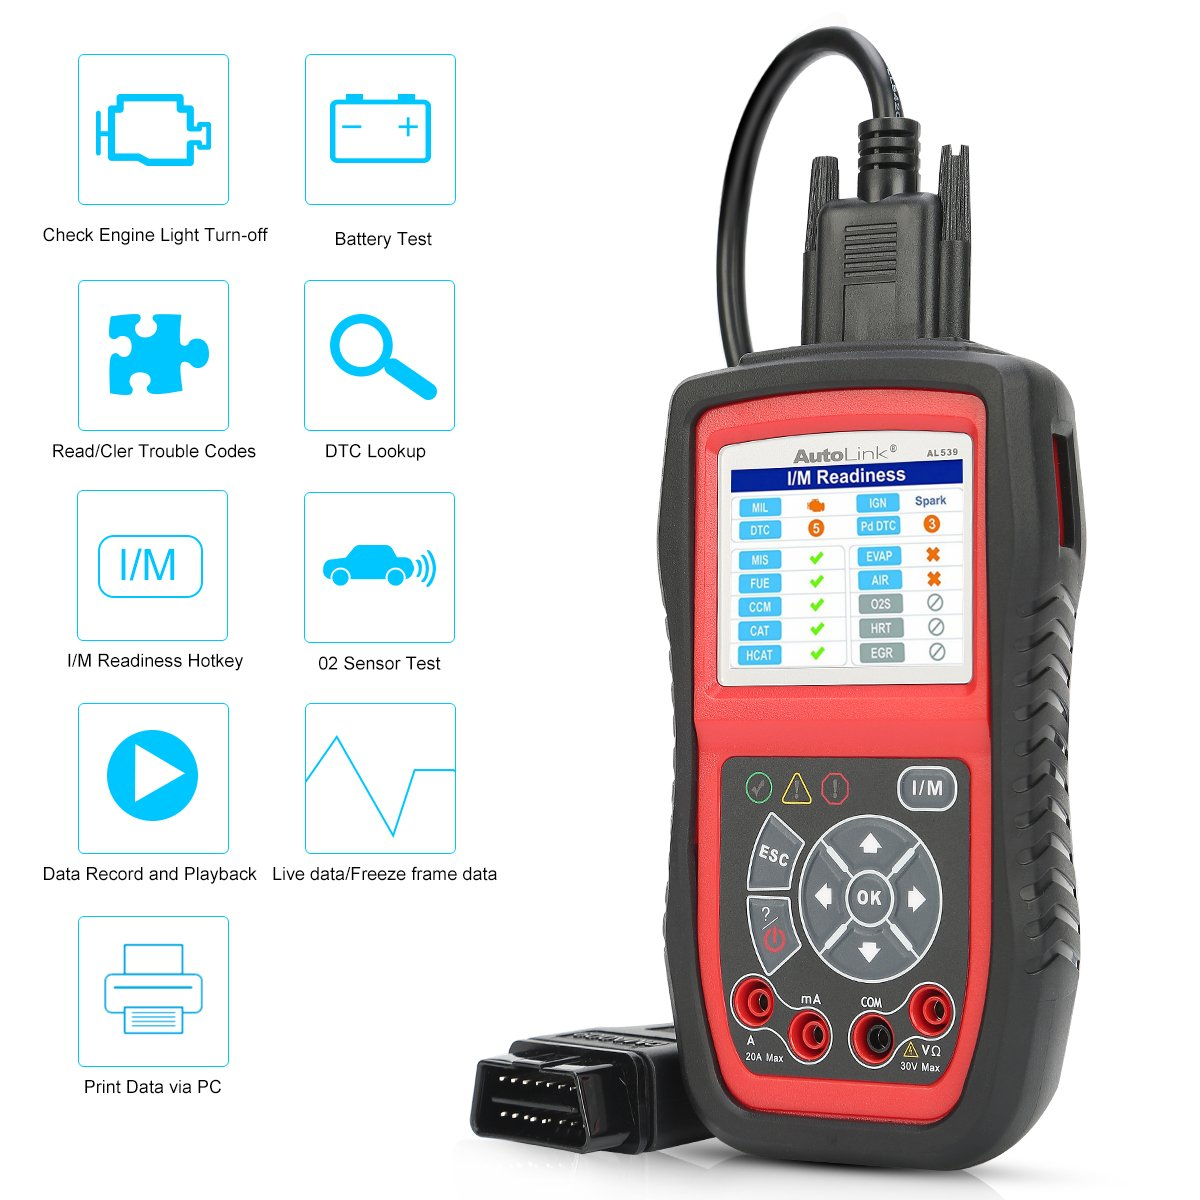 Autel AL539 Code Reader Scanner Scan Tool Car Electrical Tester with Full OBD2 Diagnoses and Avometer Function(Upgraded Version of AL519) by Autel (Image #2)